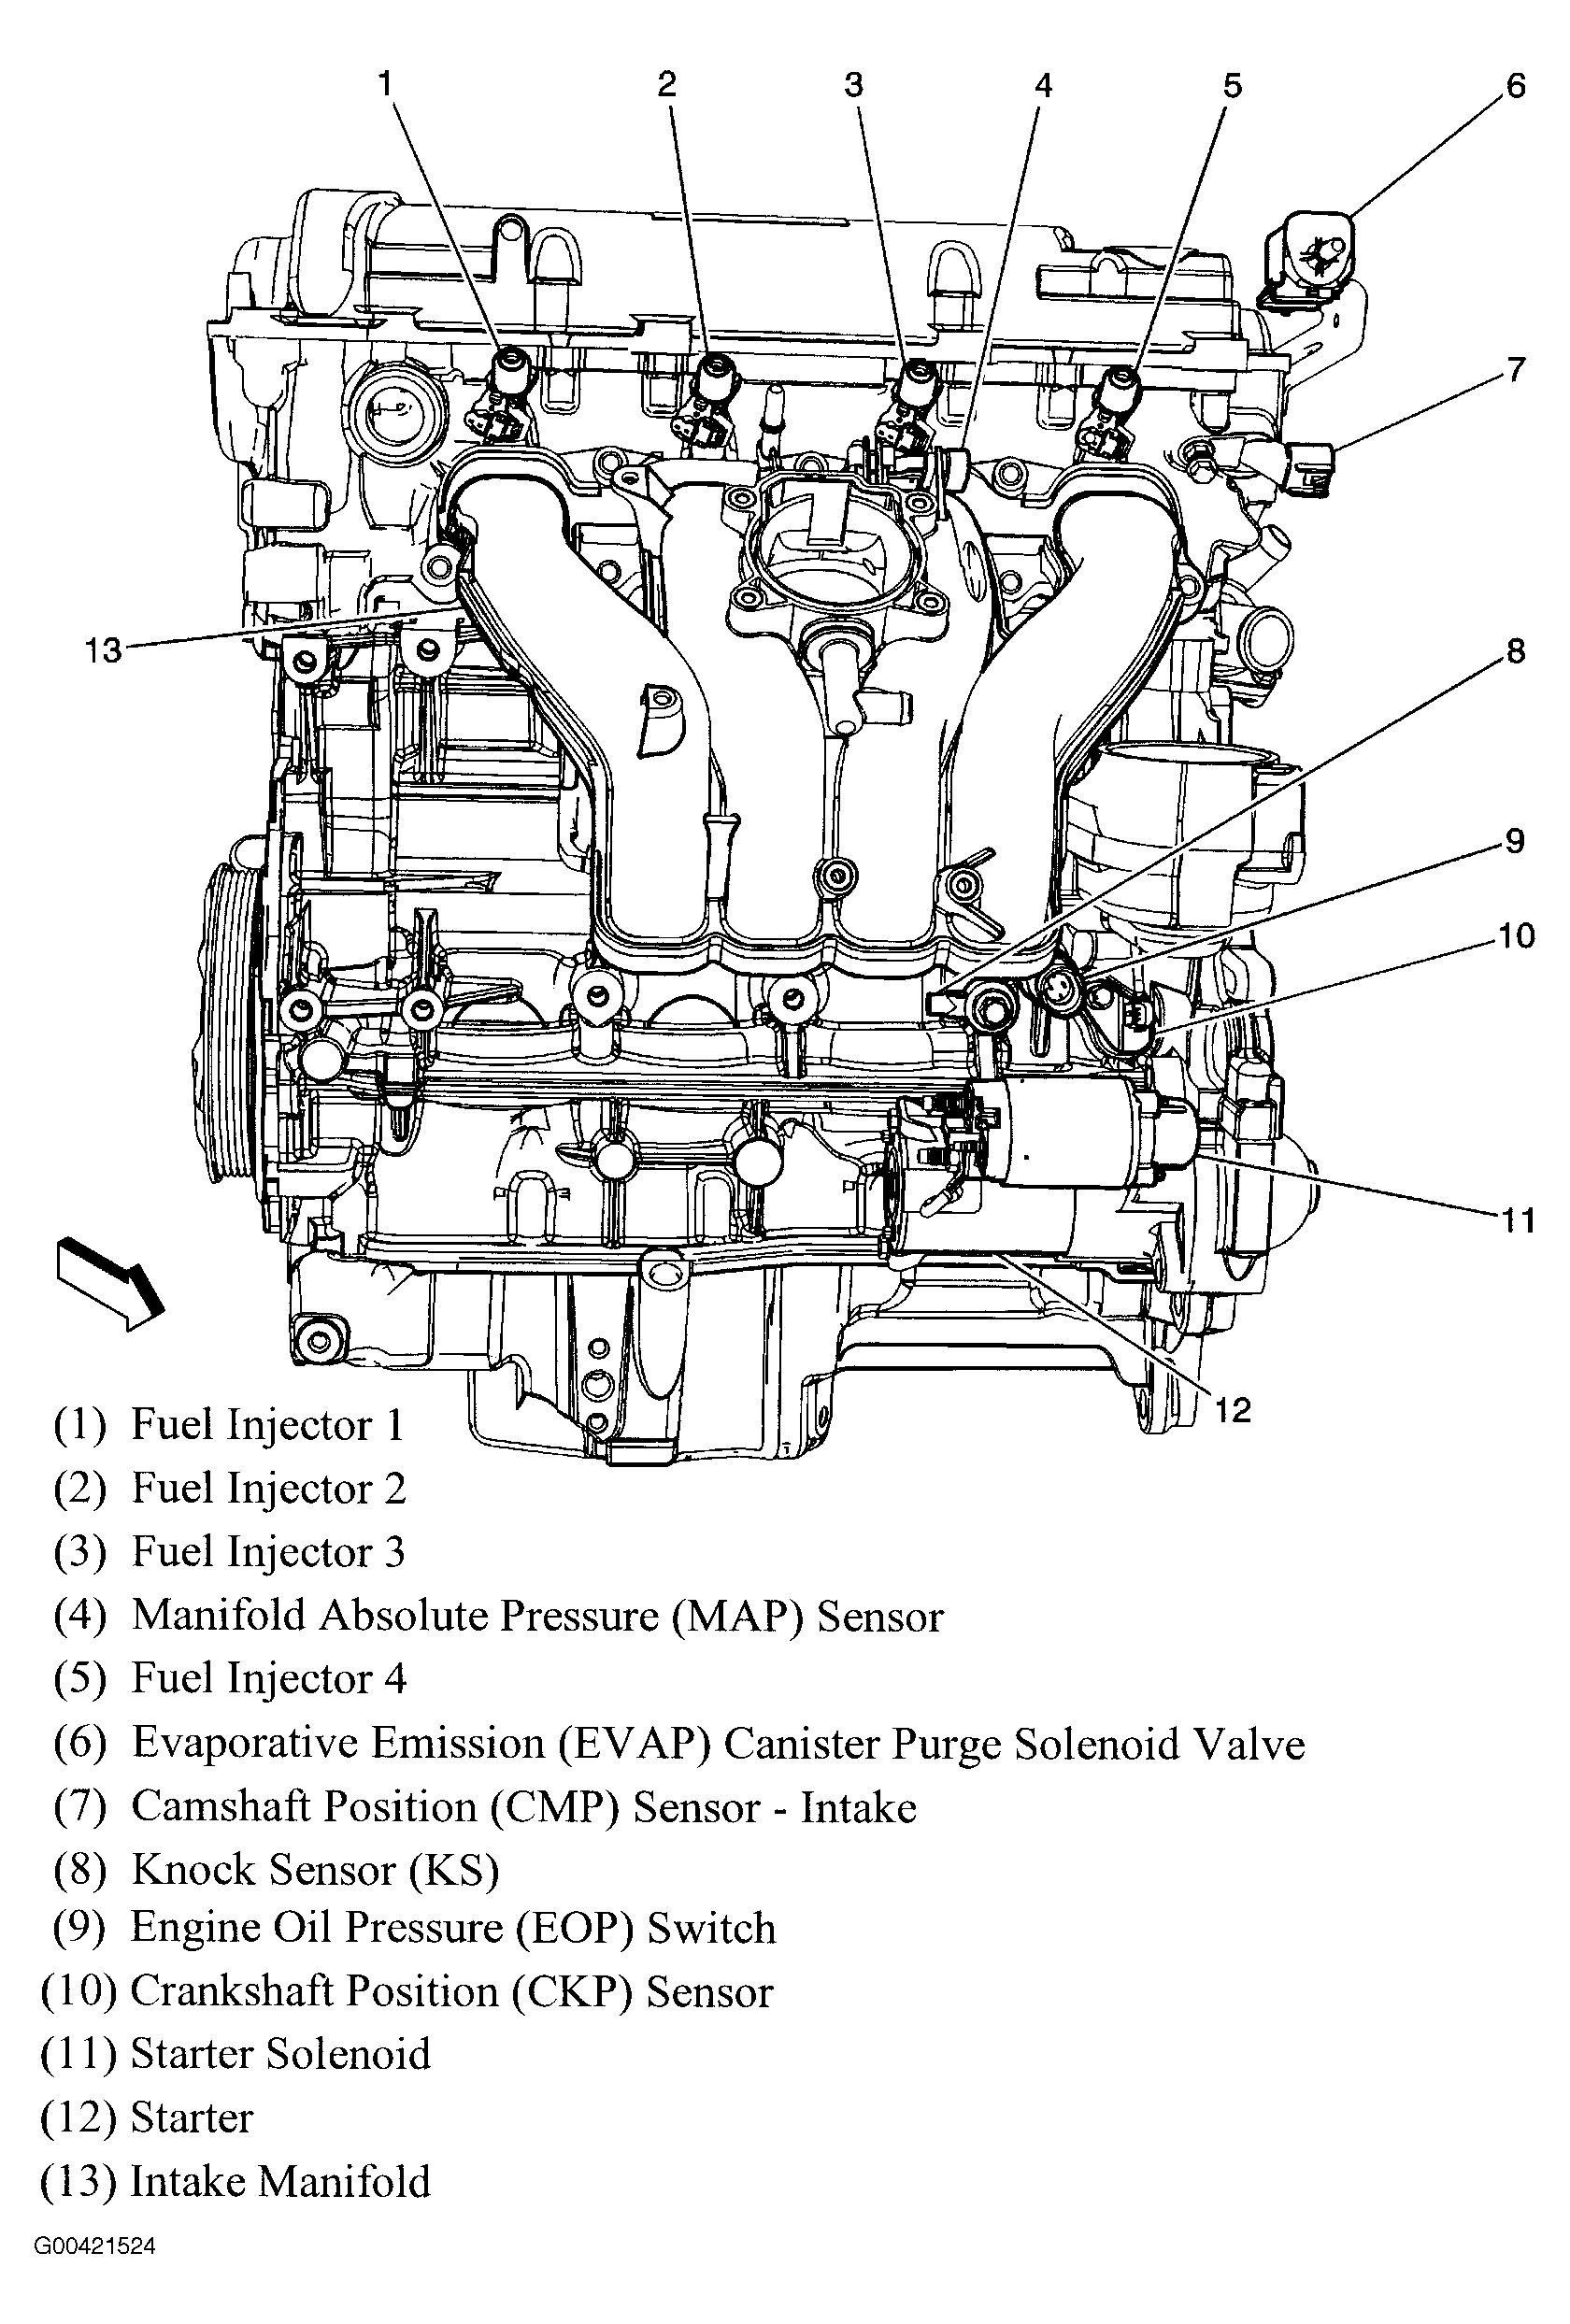 Chevy S10 2 2l Engine Diagram - 18 Wheeler Engine Diagram  sonycdx.au-delice-limousin.fr | 99 S10 Engine Diagram |  | Bege Place Wiring Diagram - Bege Wiring Diagram Full Edition